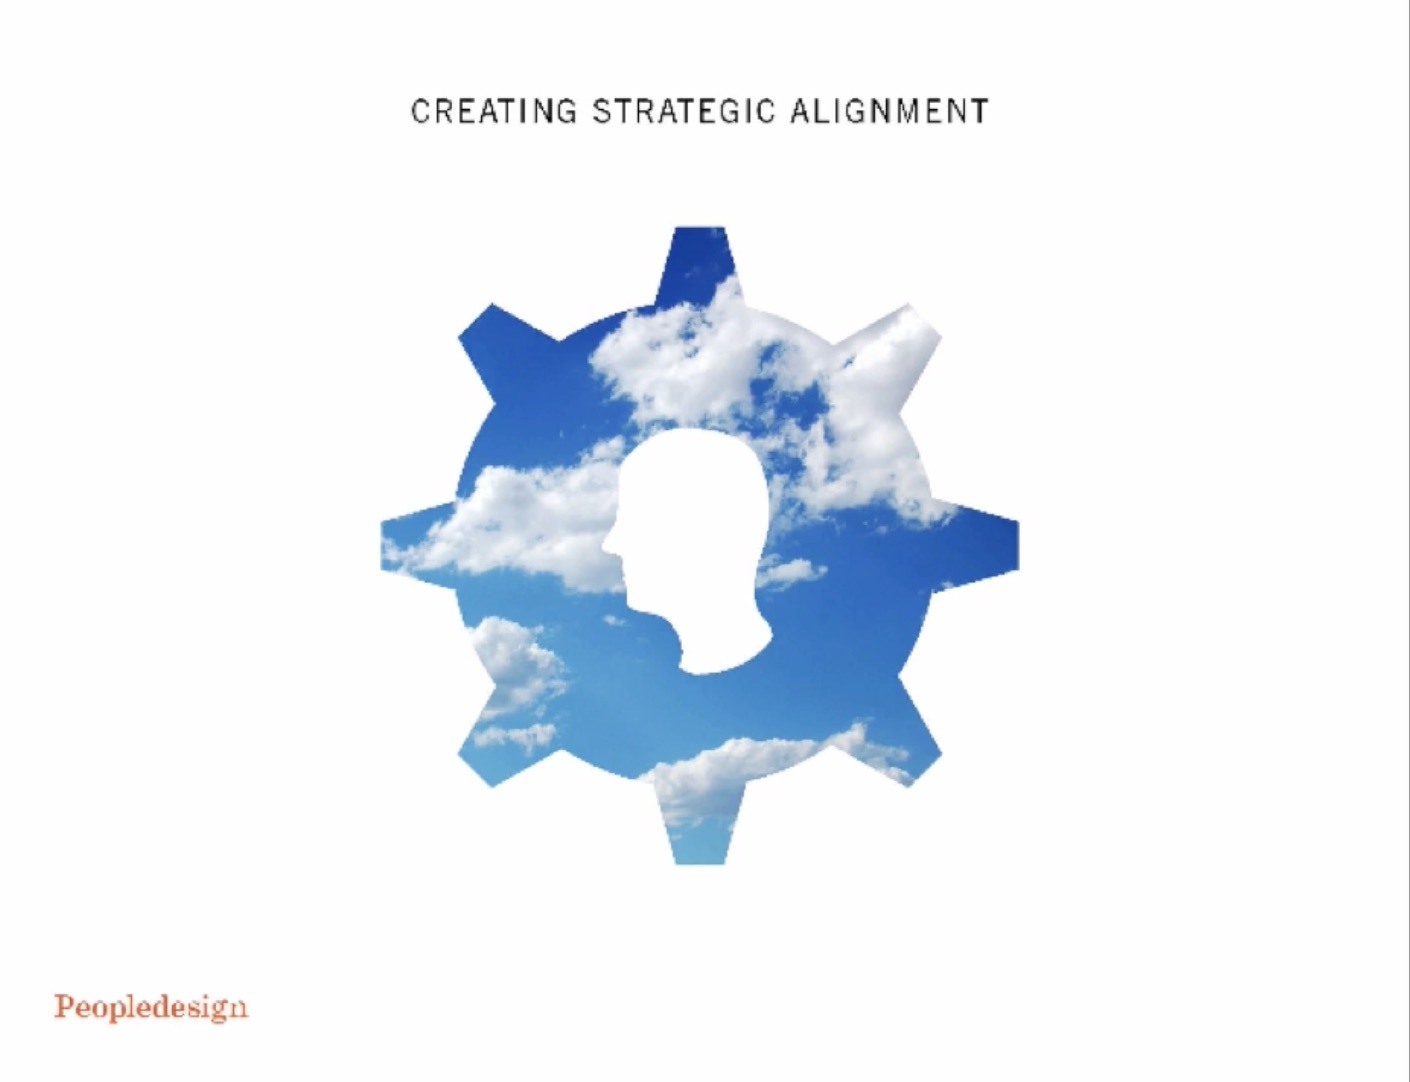 Video - Creating Strategic Alignment